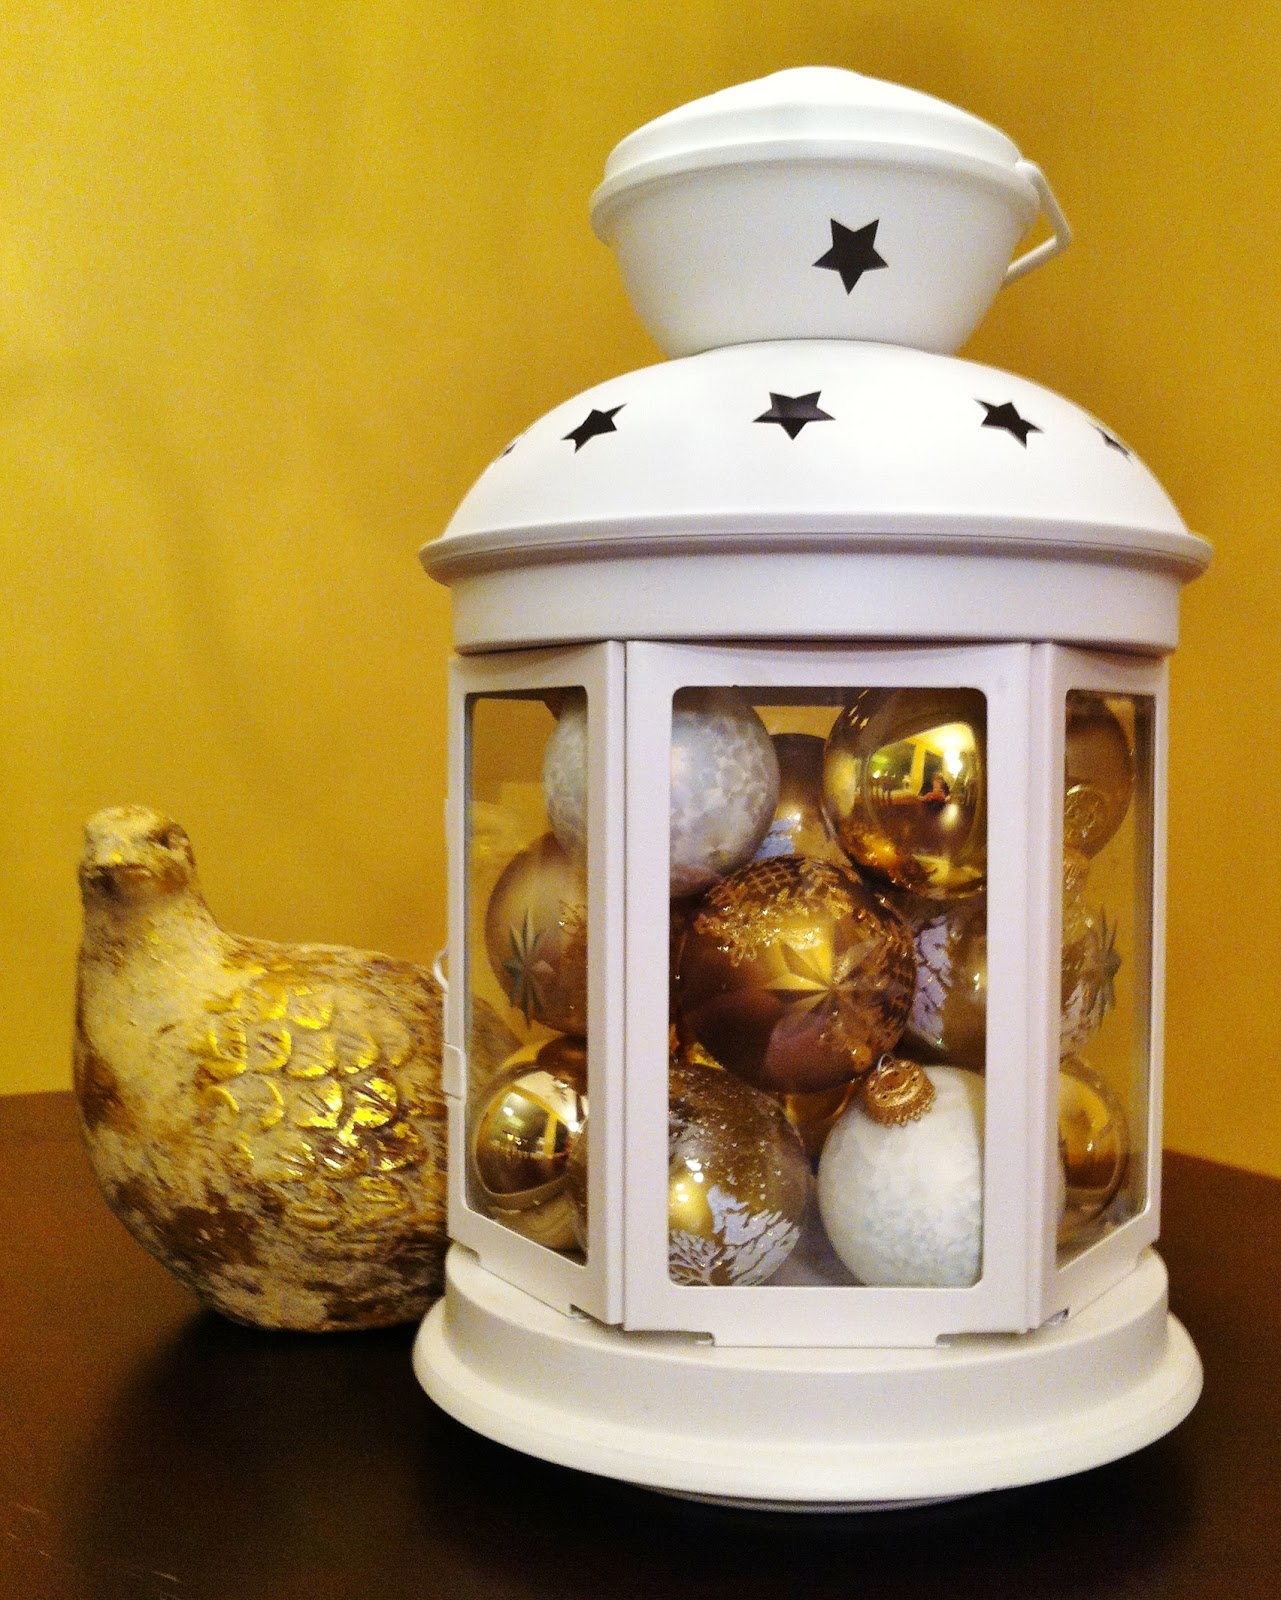 Bonnieprojects lantern and ornaments centerpiece